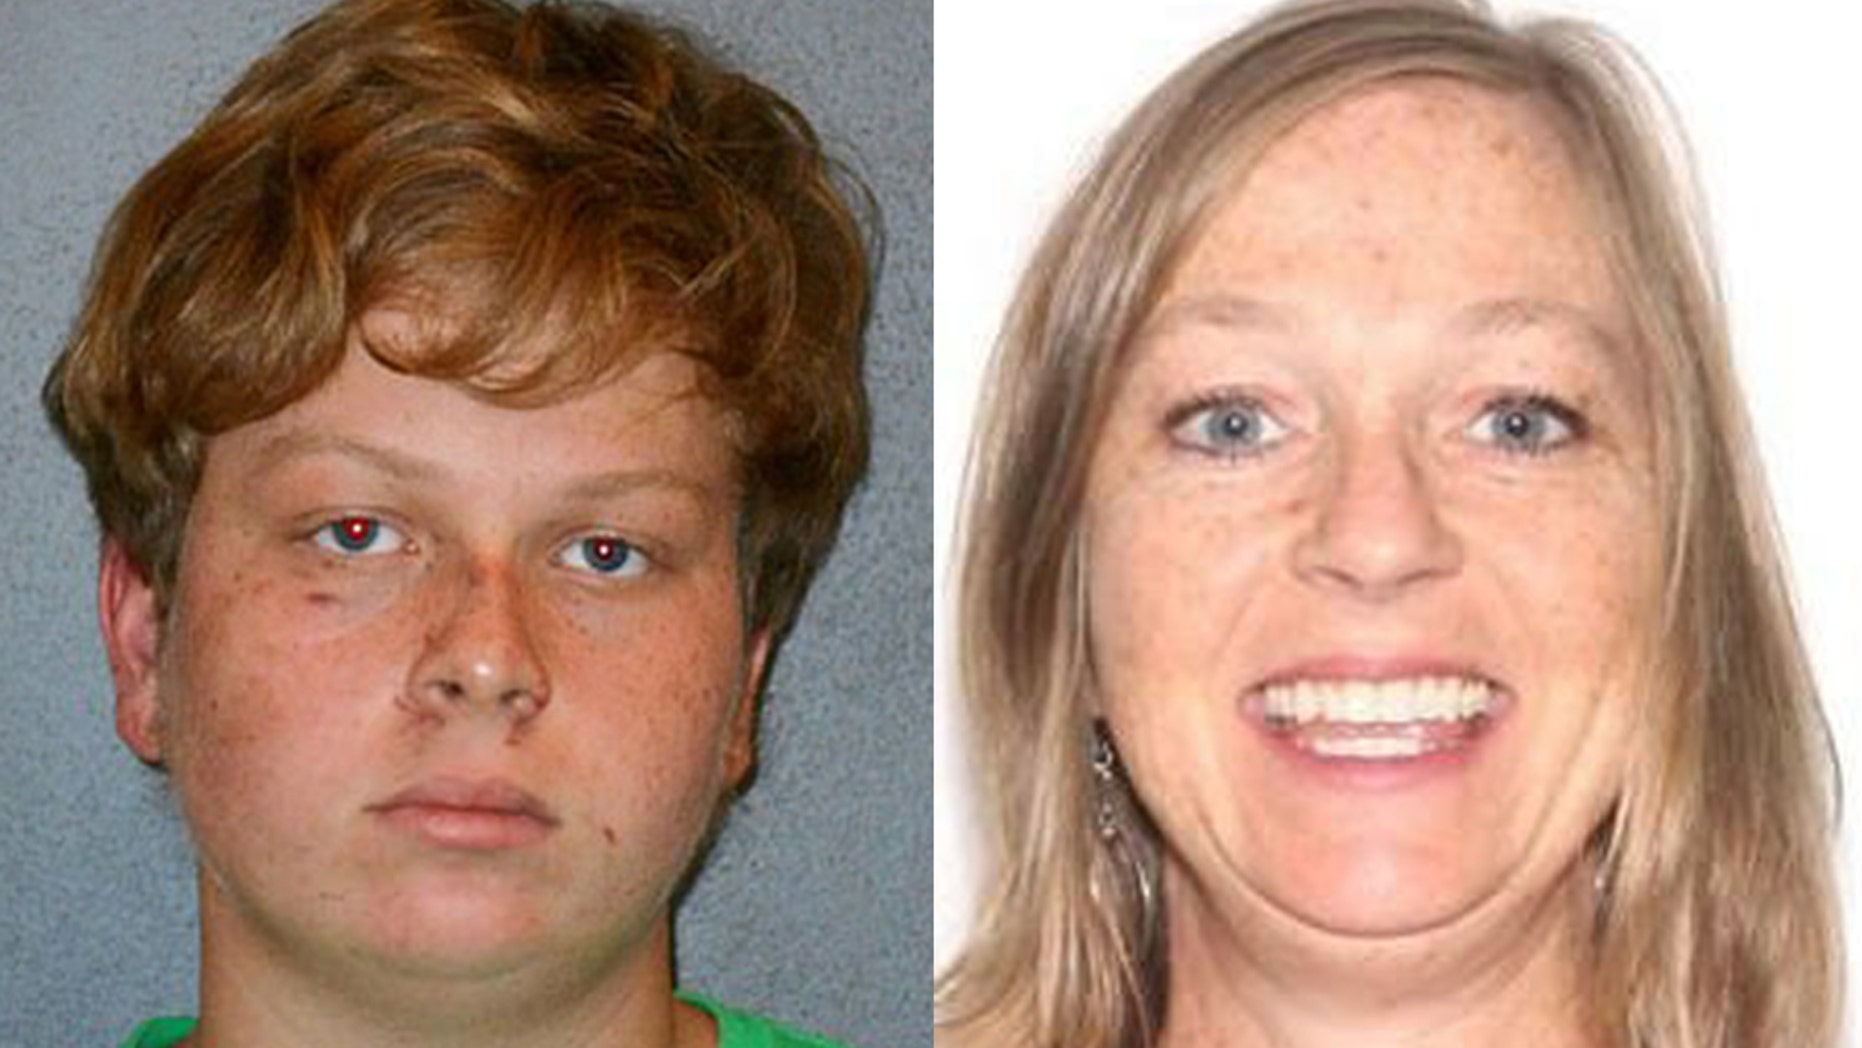 Judge: Teenager accused of killing mom will remain in jail